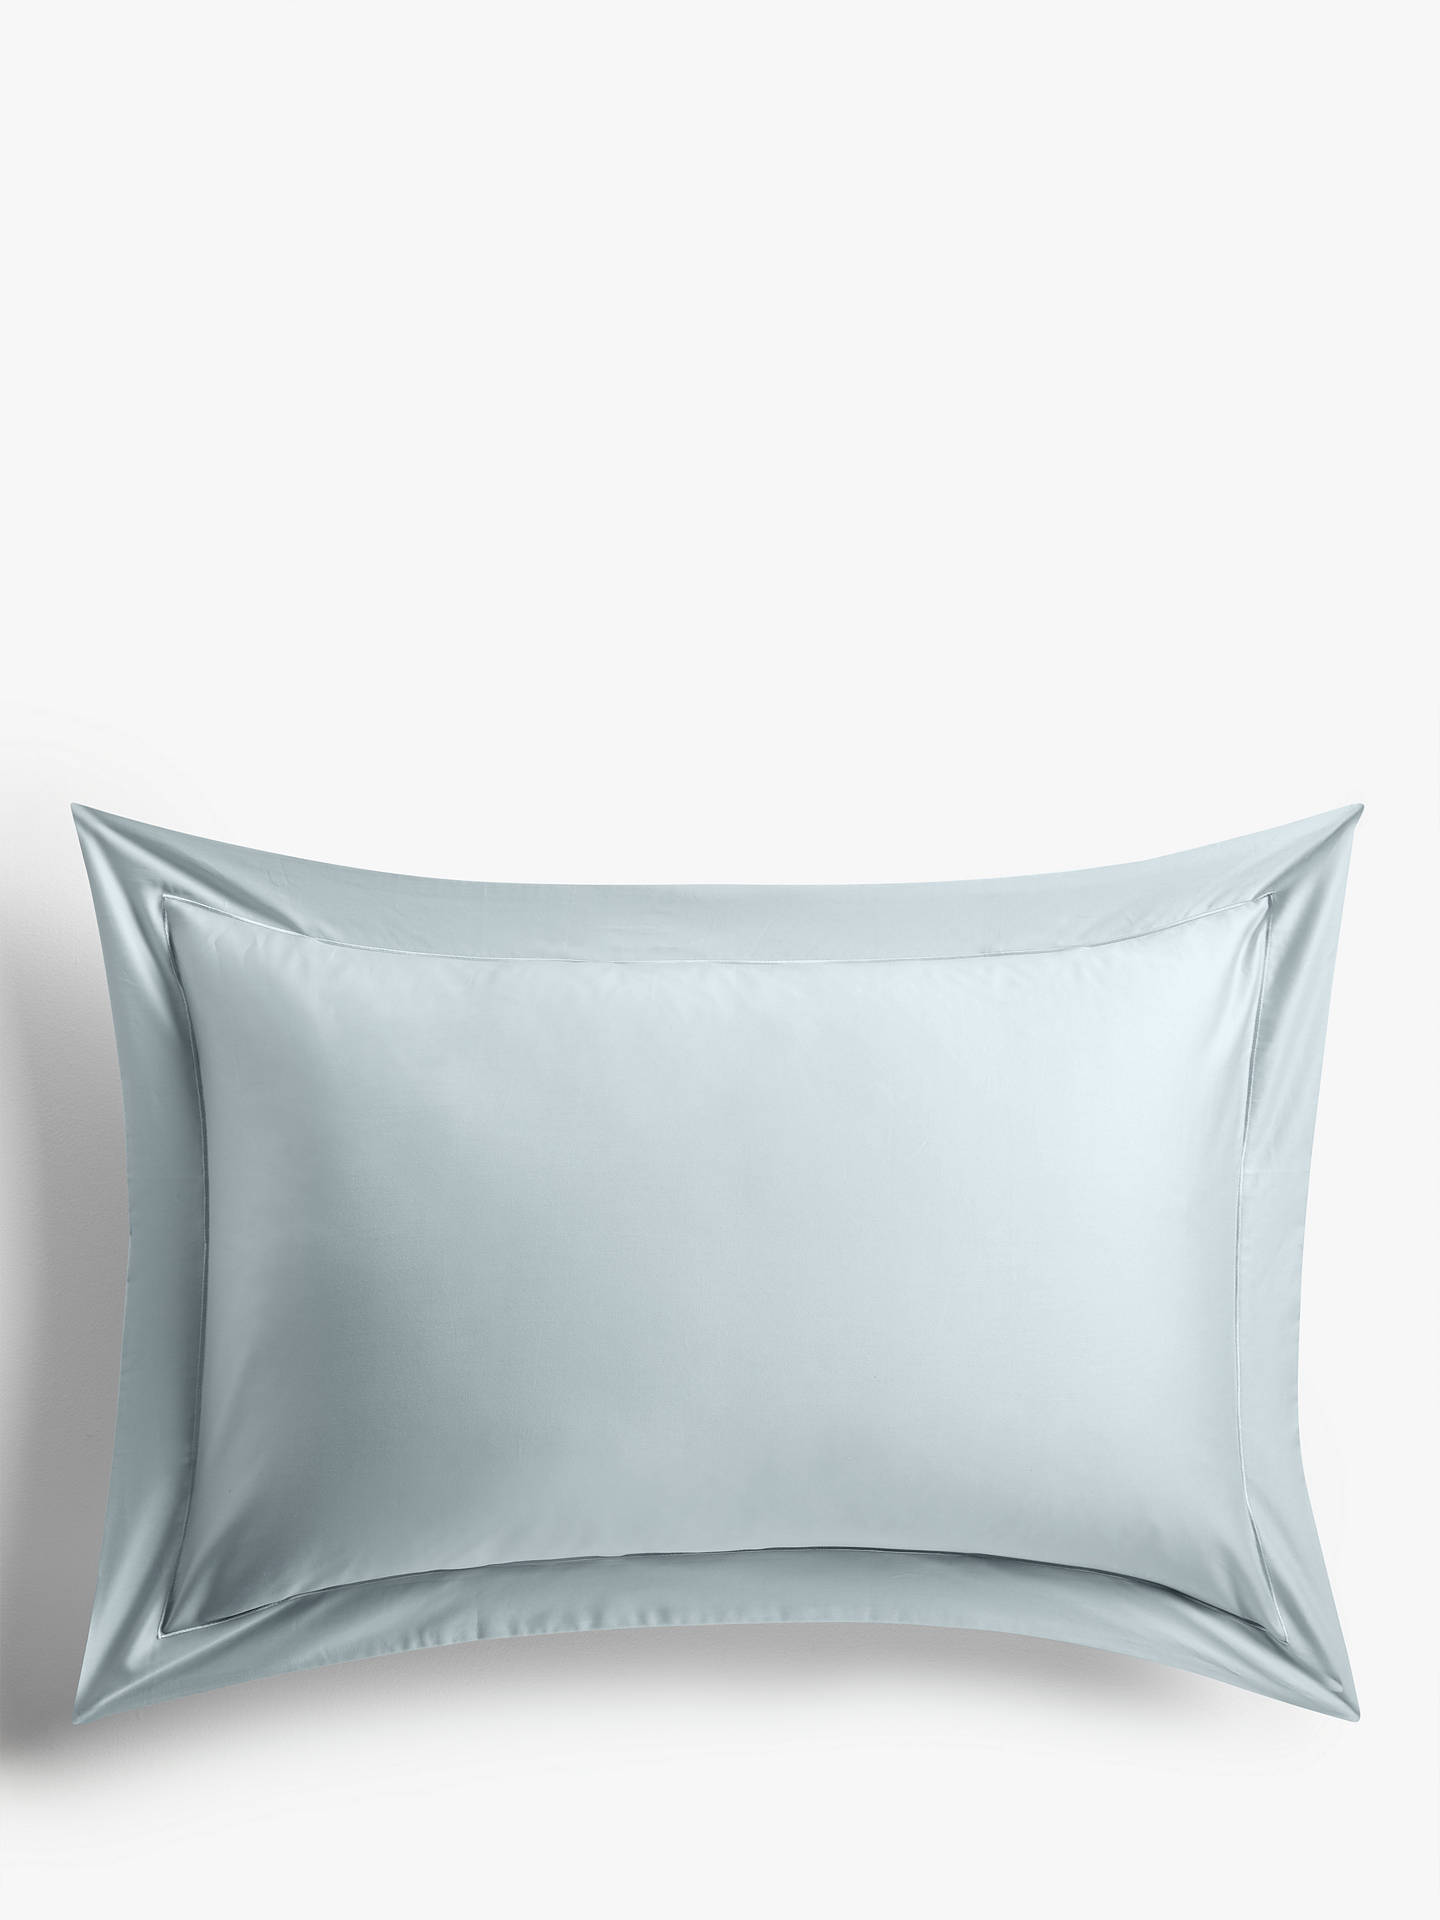 Buy John Lewis & Partners 400 Thread Count Soft & Silky Egyptian Cotton Standard Pillowcase, Ice Blue Online at johnlewis.com